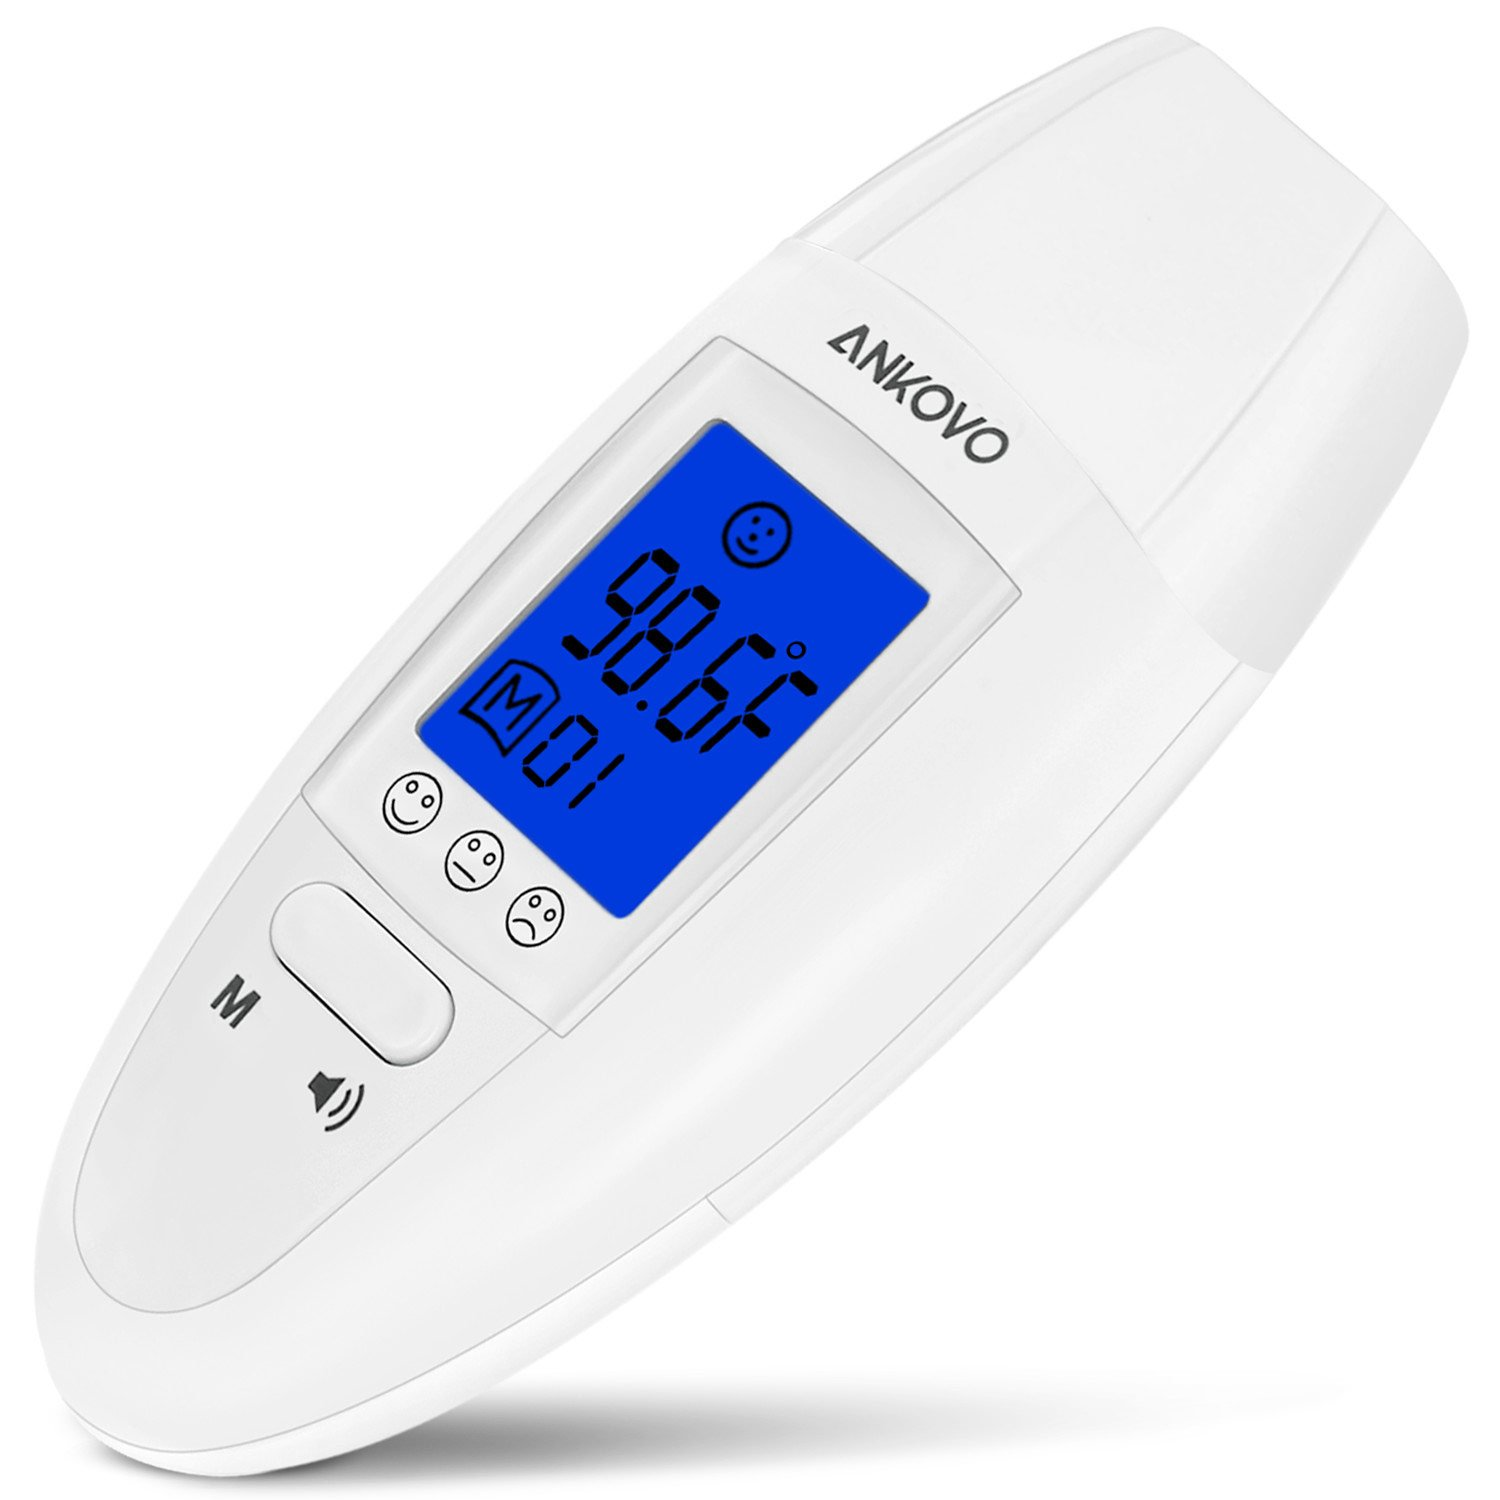 ANKOVO Medical Digital Forehead and Ear Thermometer with Fever Health Alert Clinical Monitoring System for Baby Child and Adult CE and FDA Approved